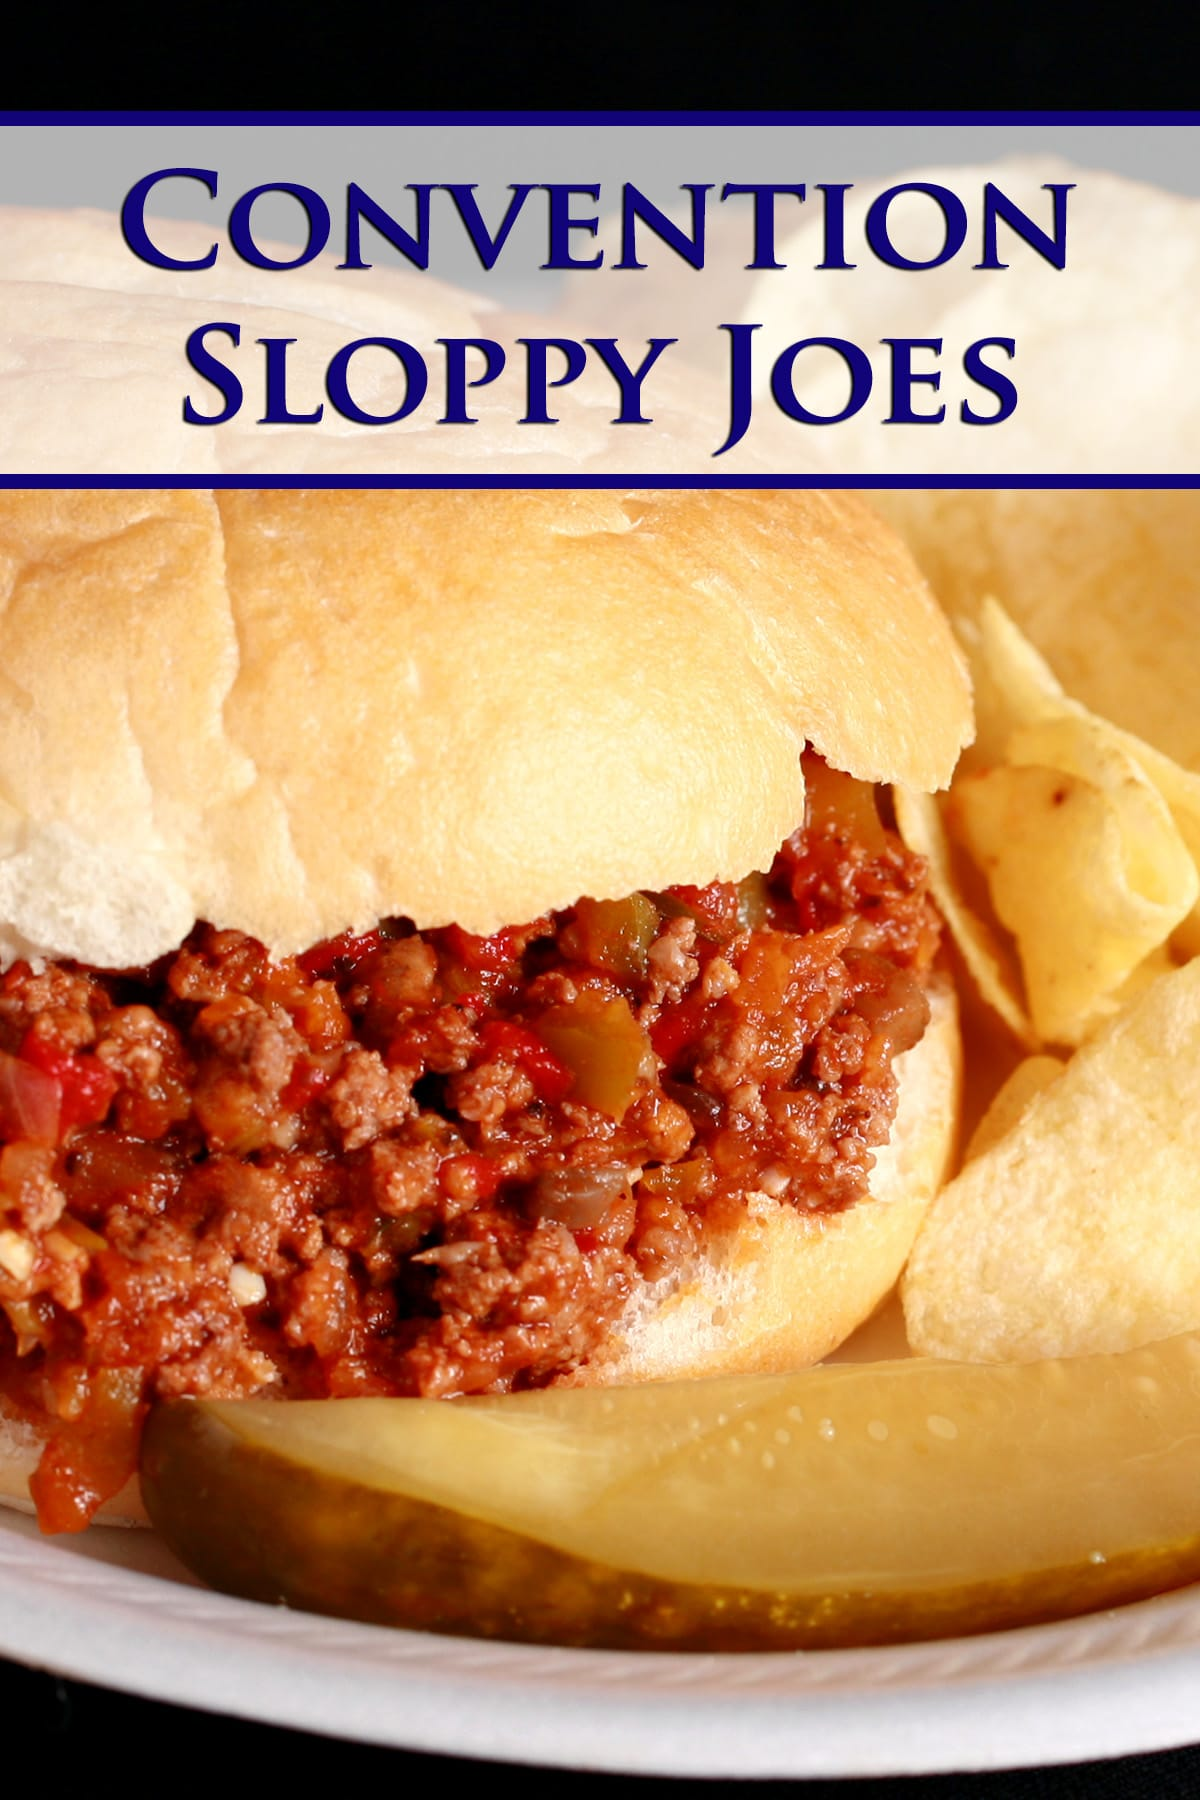 A Sloppy Joes sandwich on a paper plate, with chips and a pickle spear. Blue text overlay reads Convention Sloppy Joes.